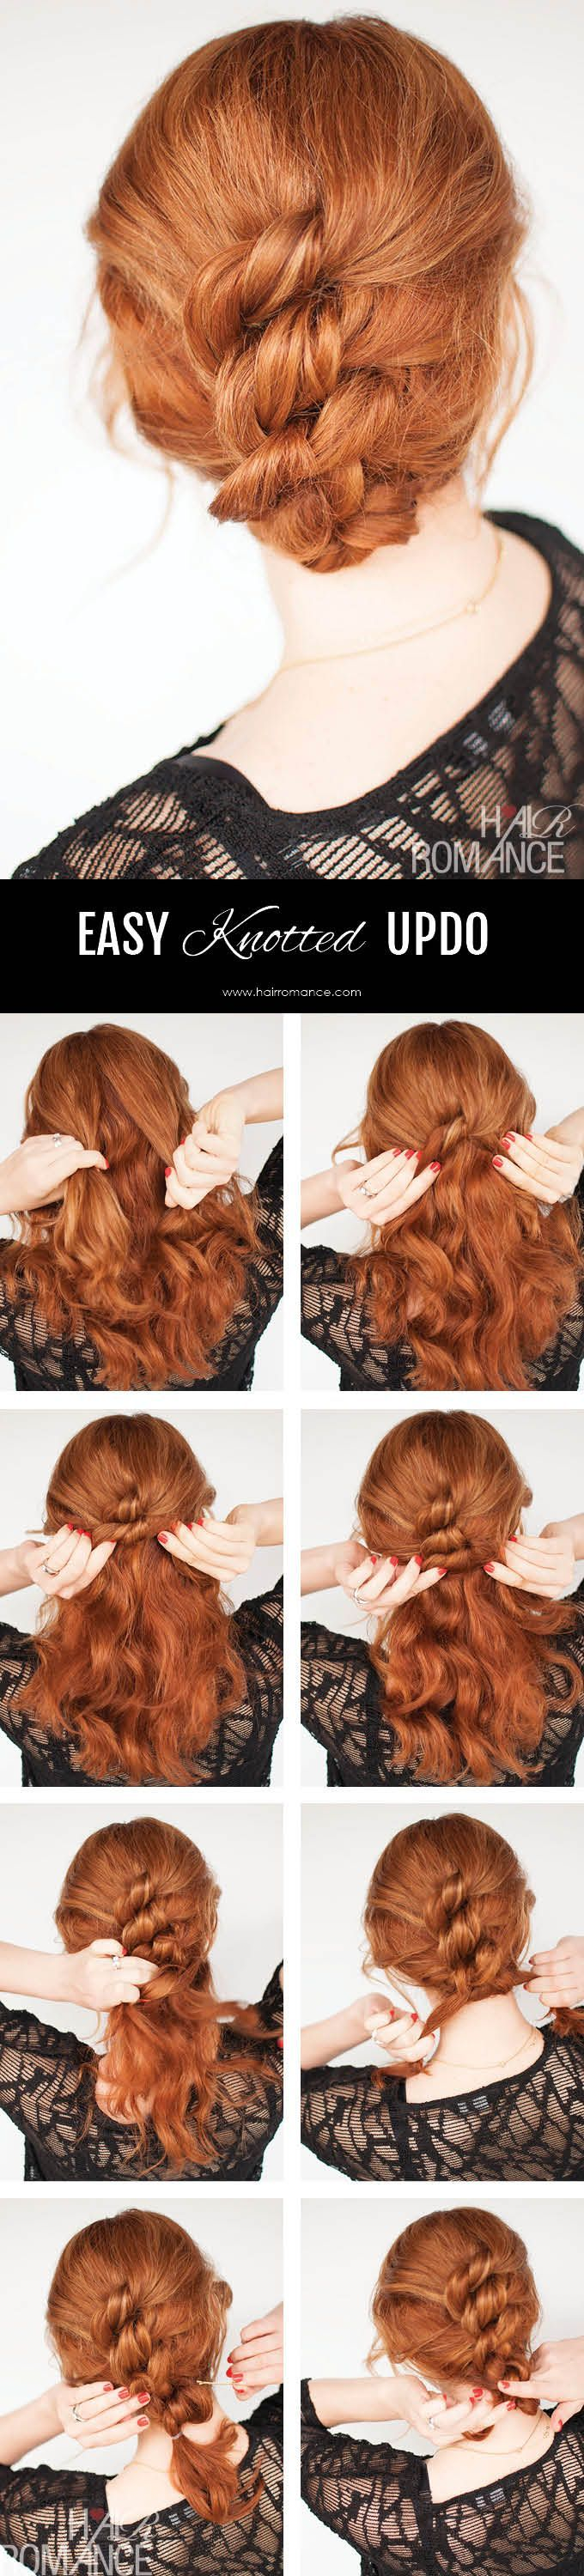 A simple yet elegant braid tutorial that takes no time at all!